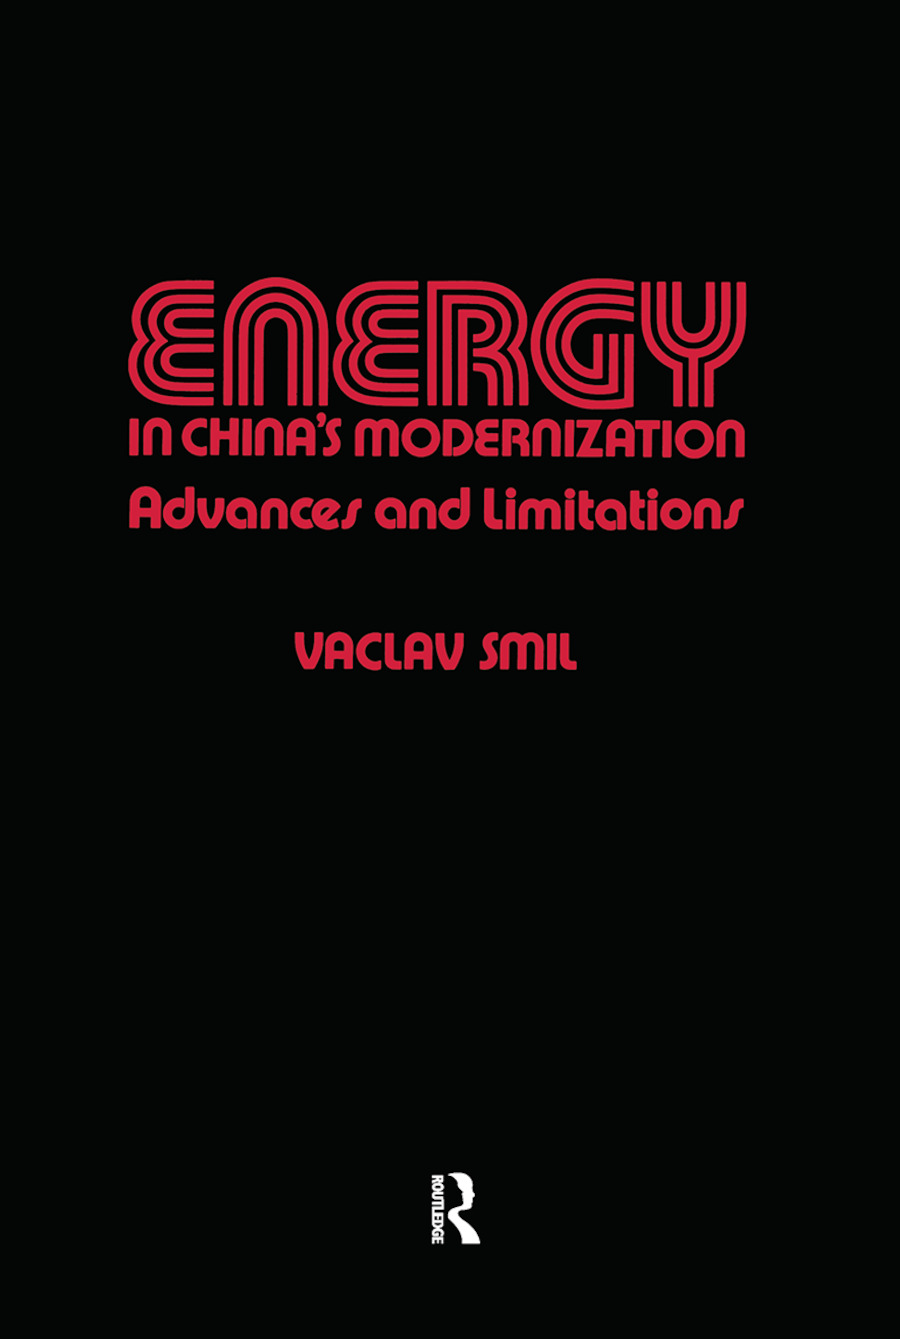 Energy in China's Modernization book cover